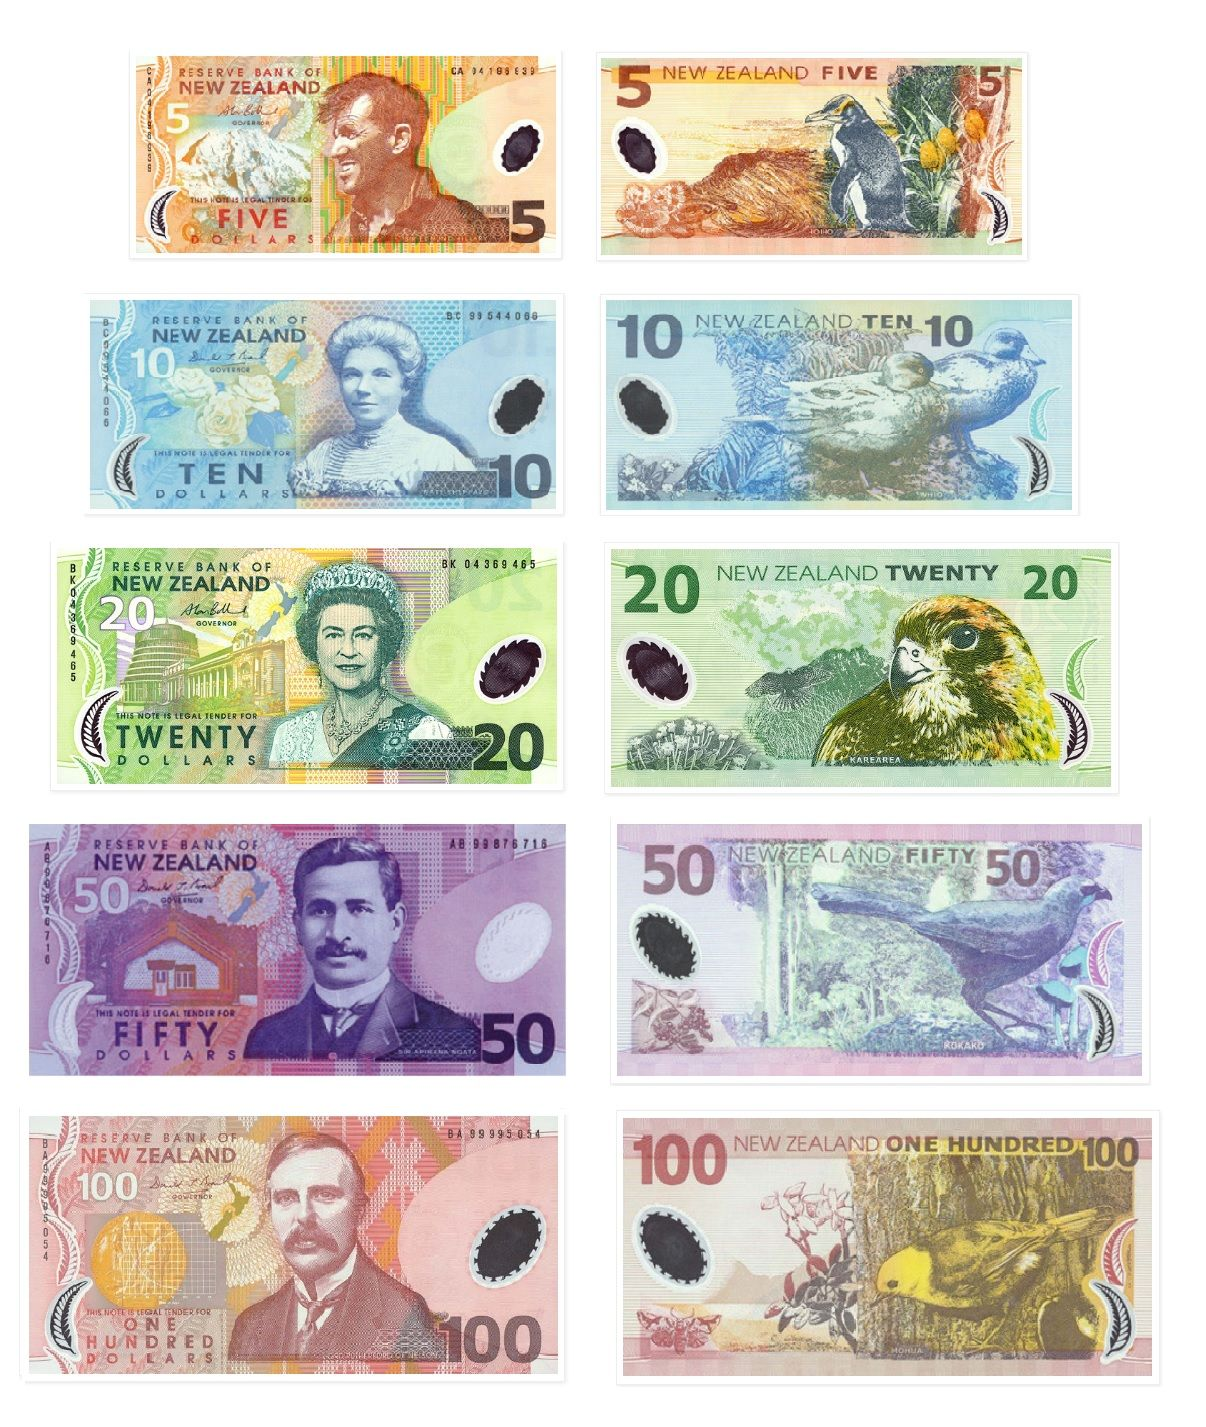 New Zealand | New zealand dollar, Money, Currency converter